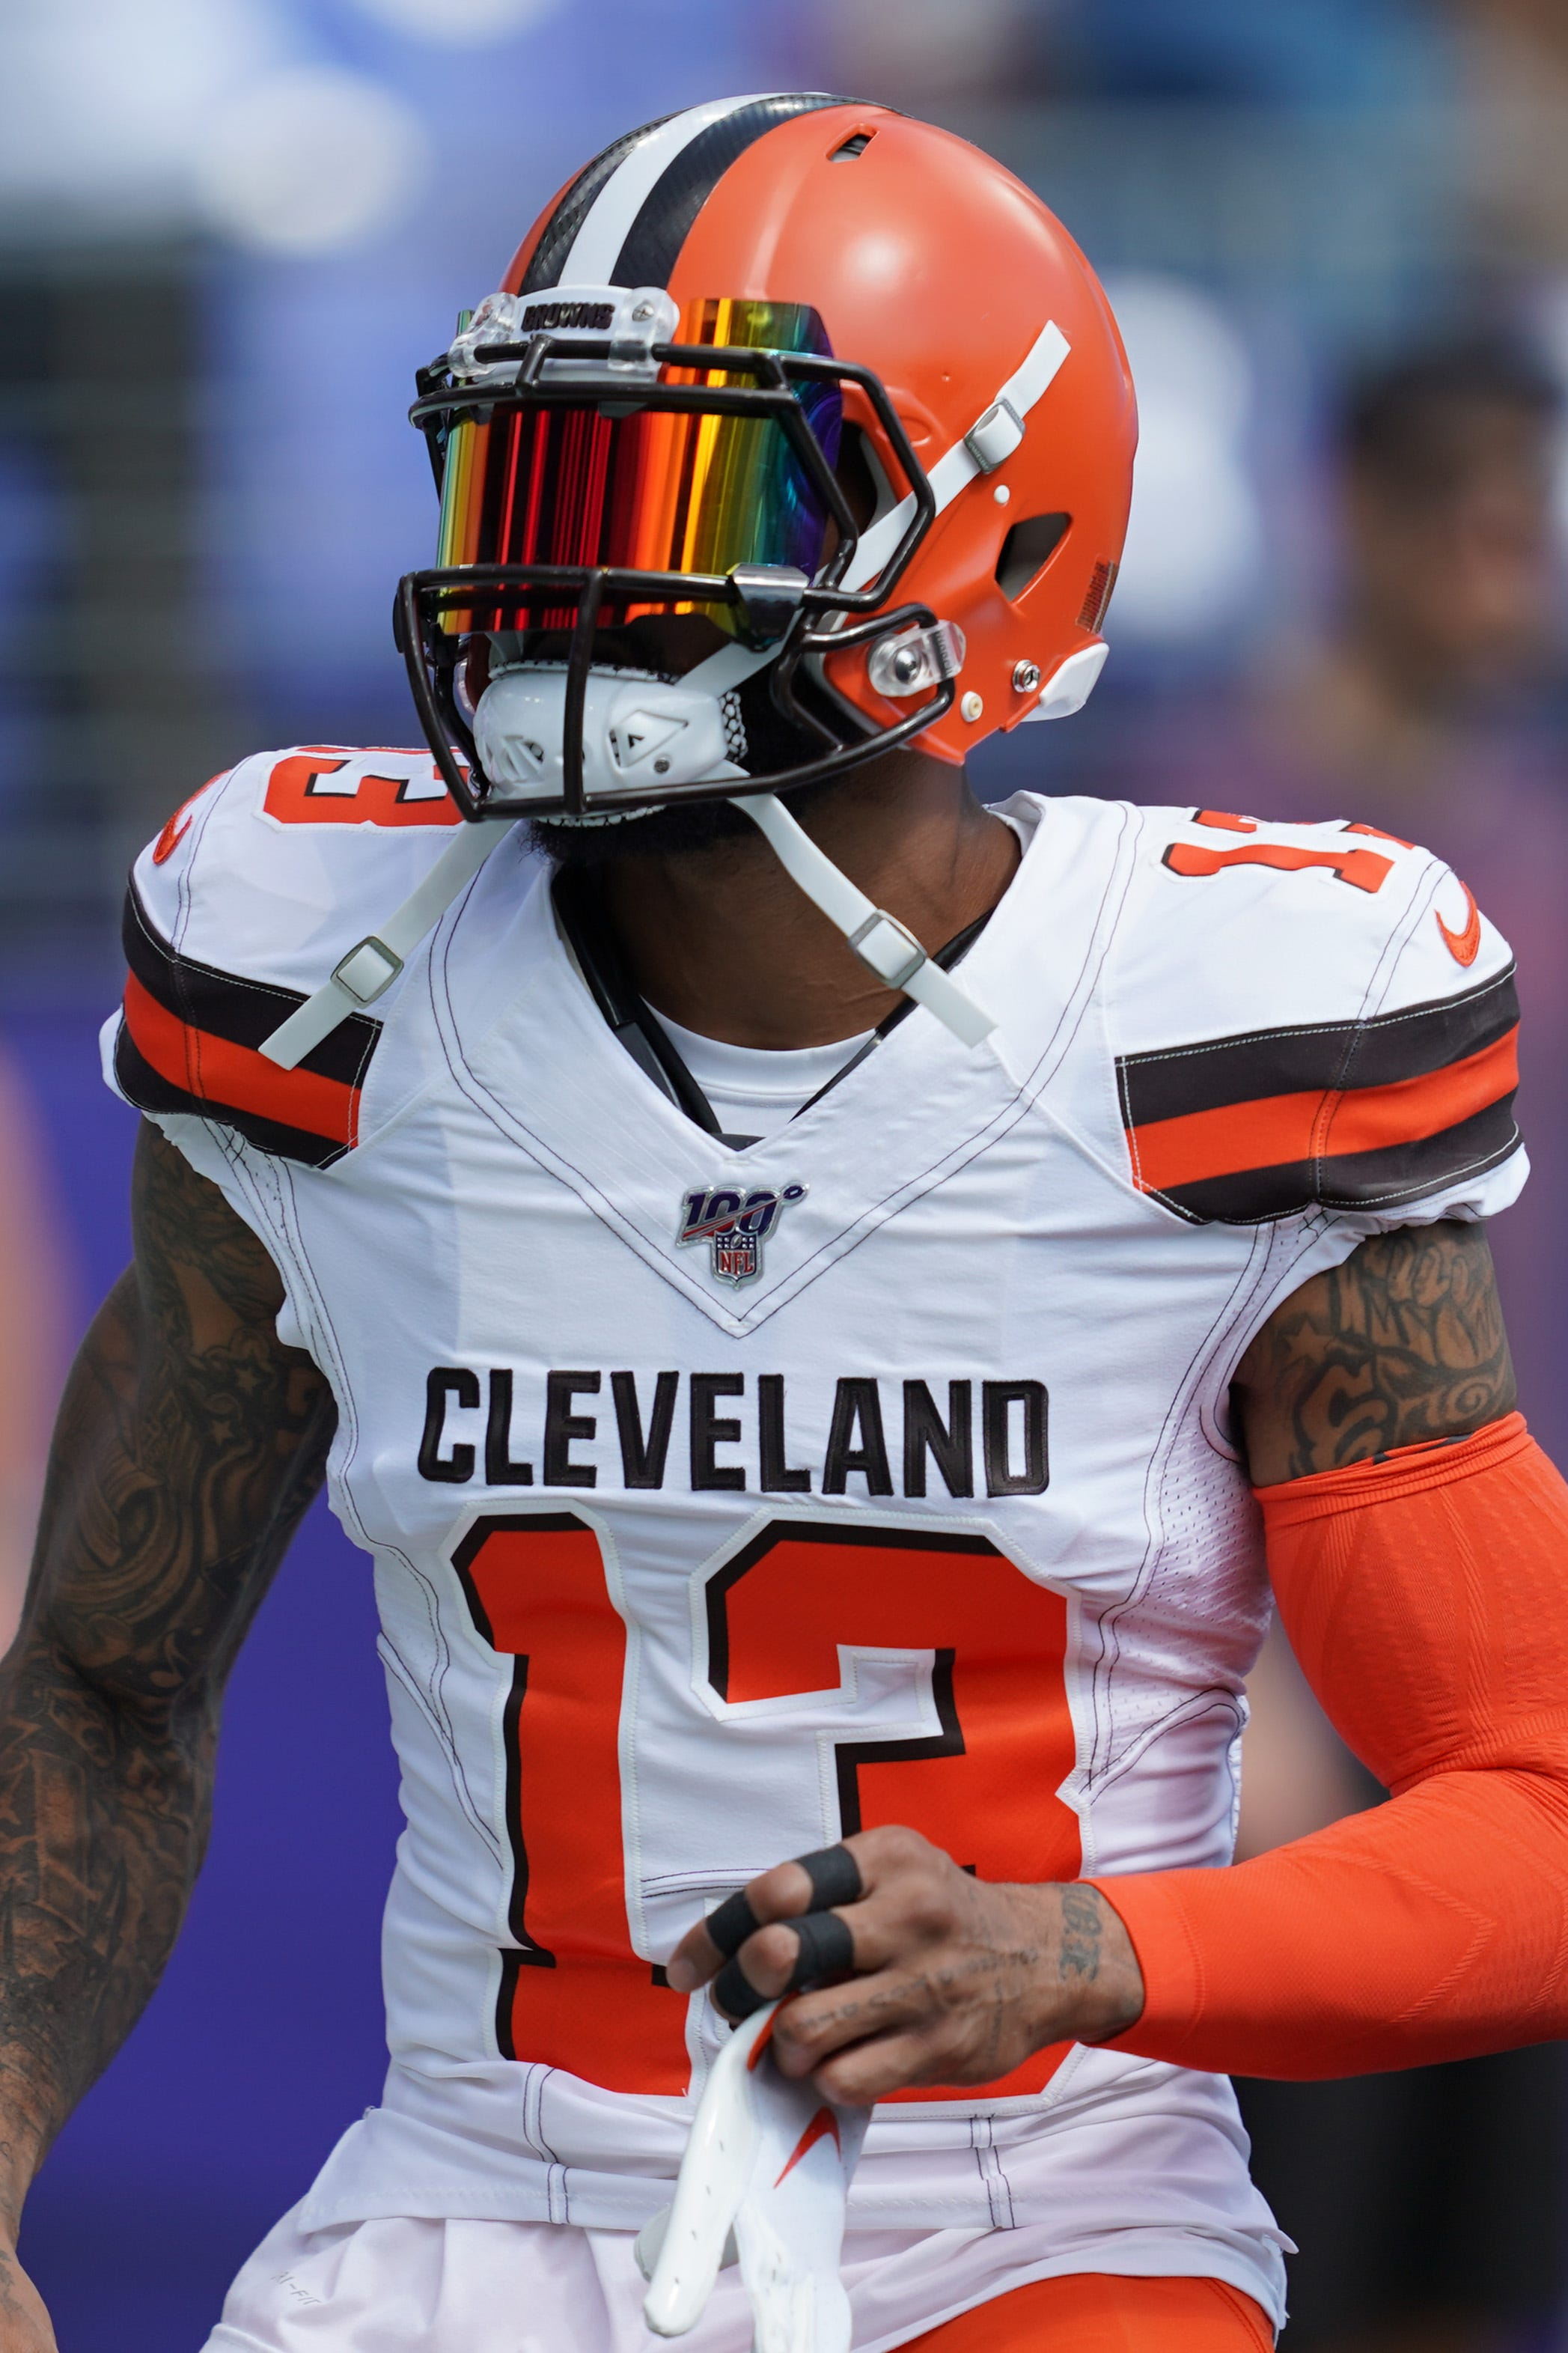 Browns Odell Beckham Jr. not pleased with $14K fine for pants that were too short